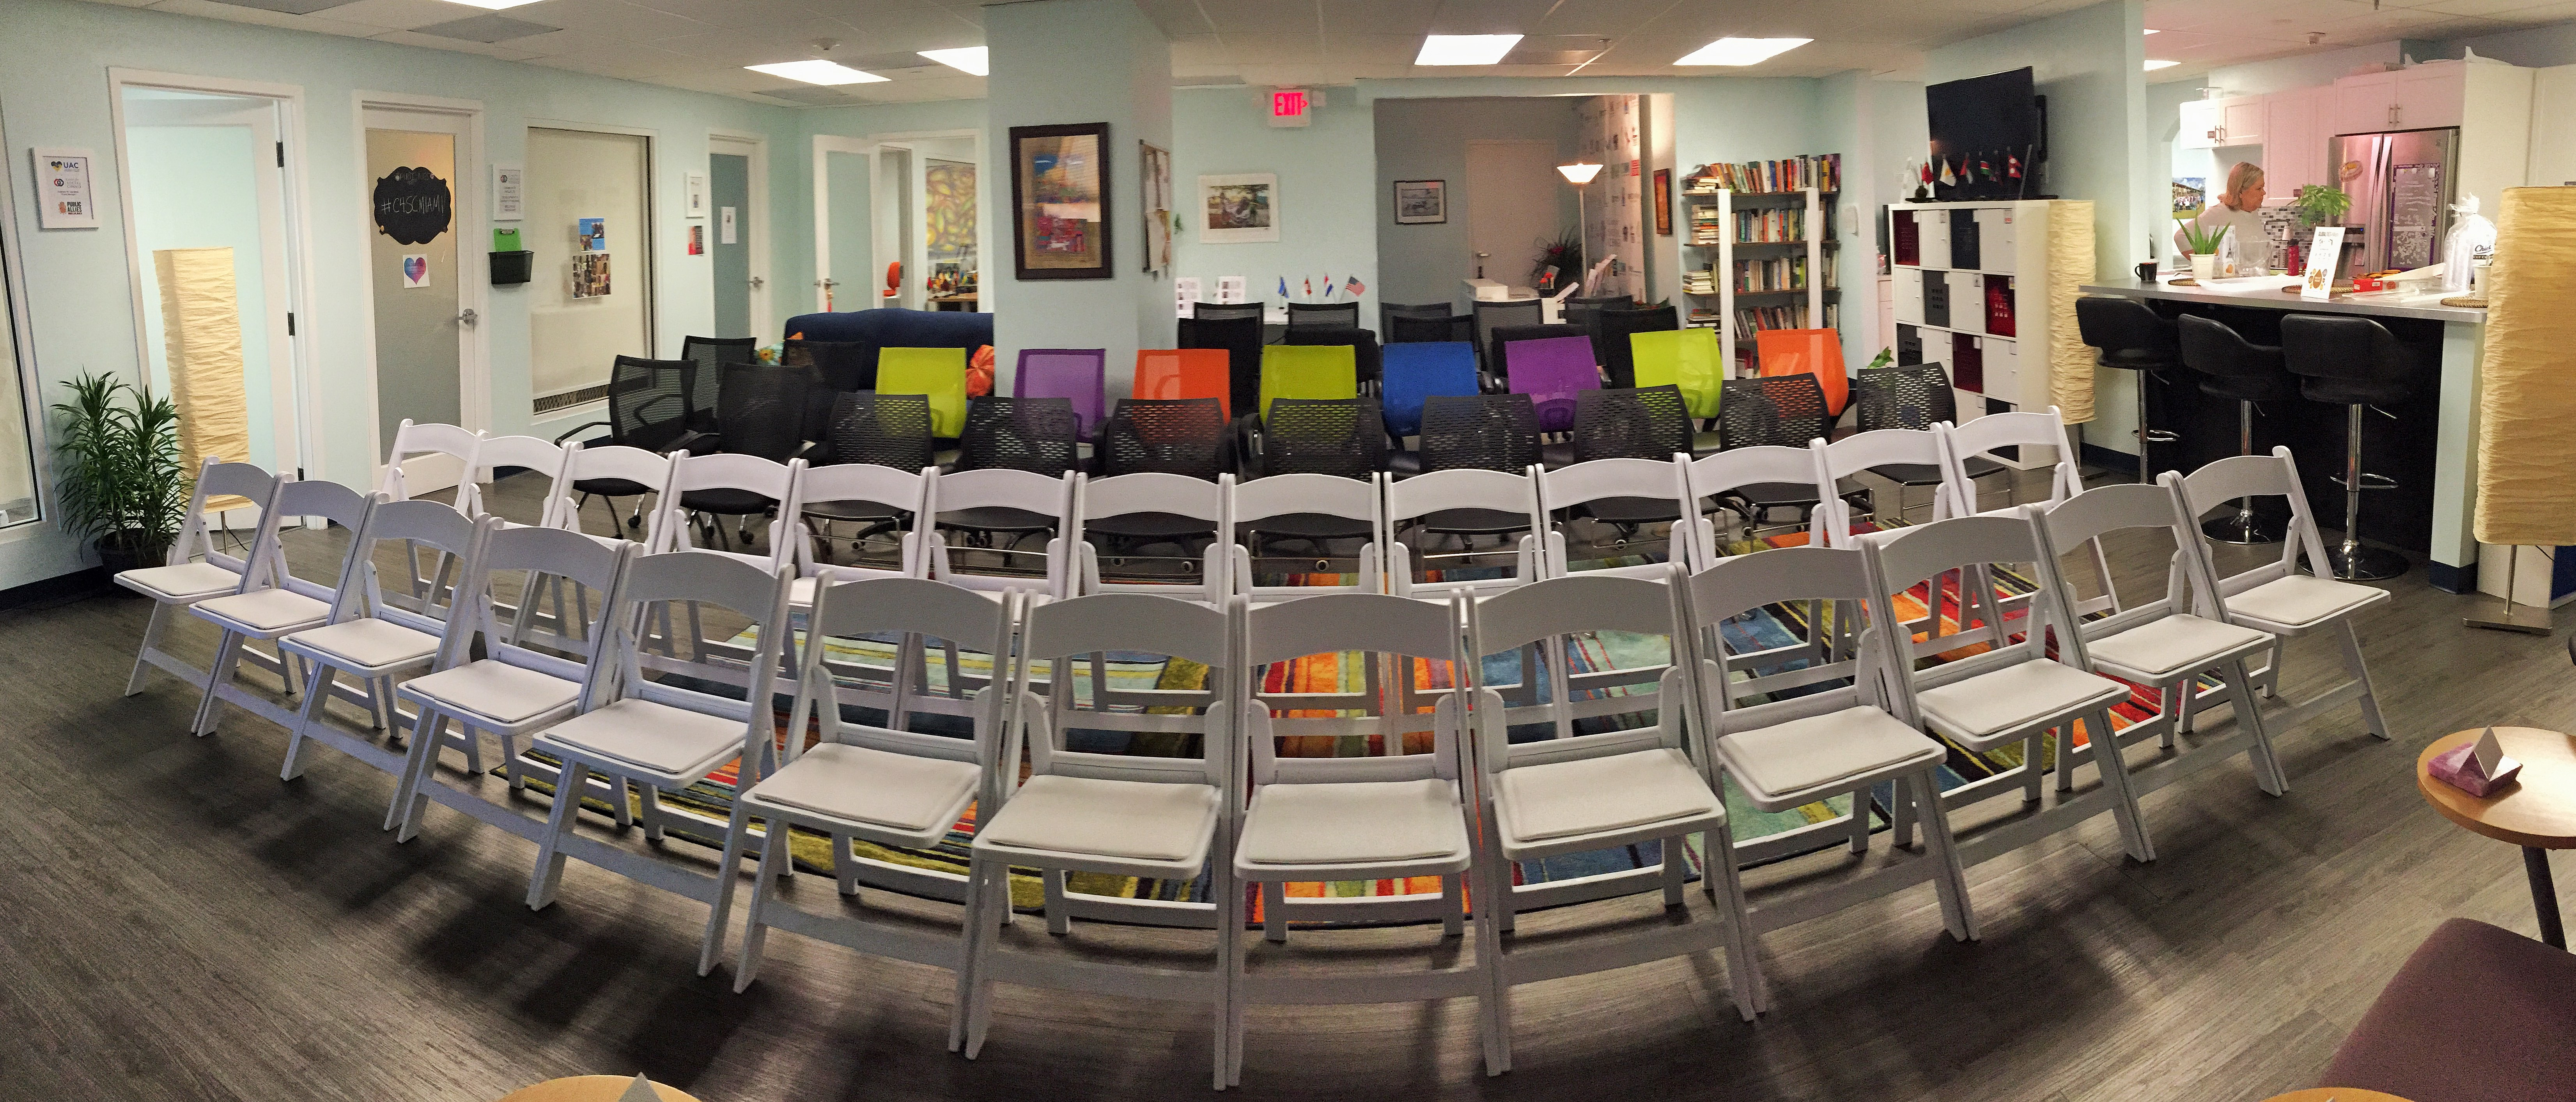 Miami Meeting Space Main Coworking Space Chairs